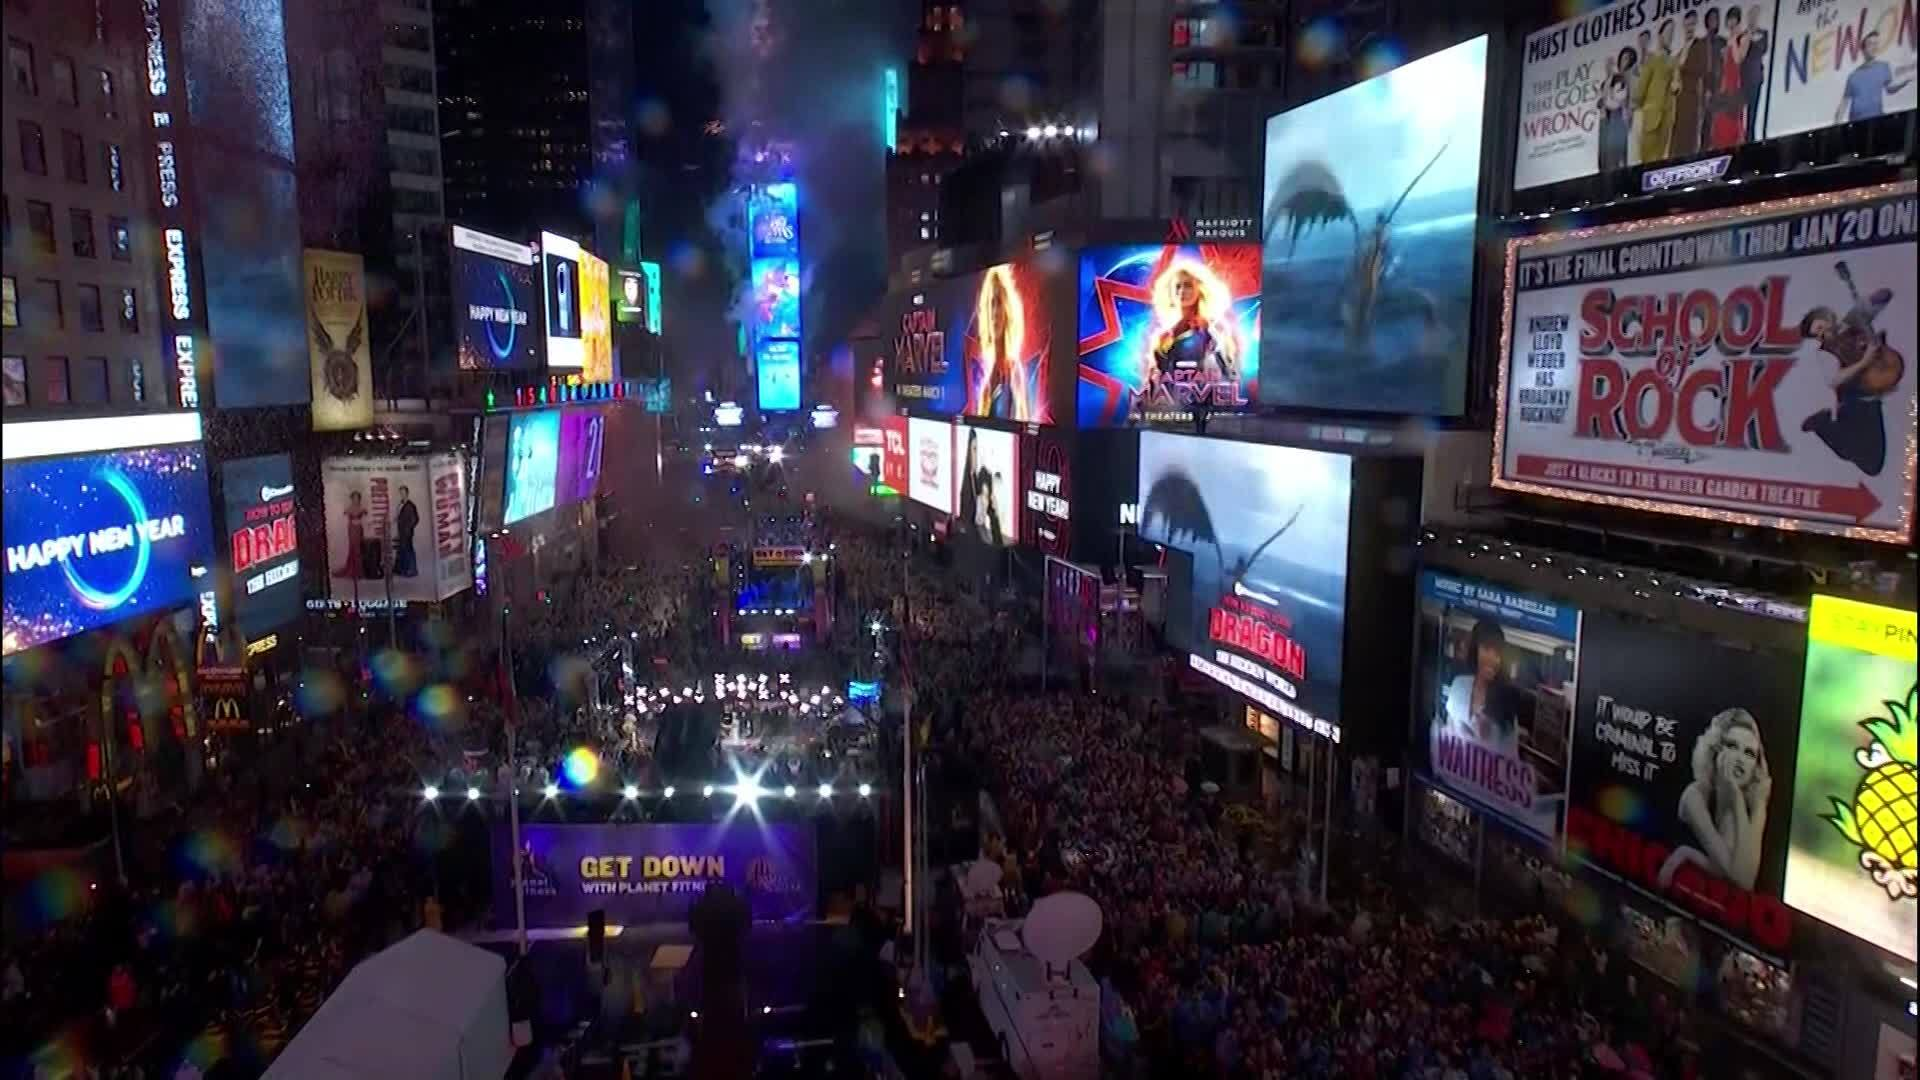 Times Square Crowd Braves Rain To Bid Wet Welcome To